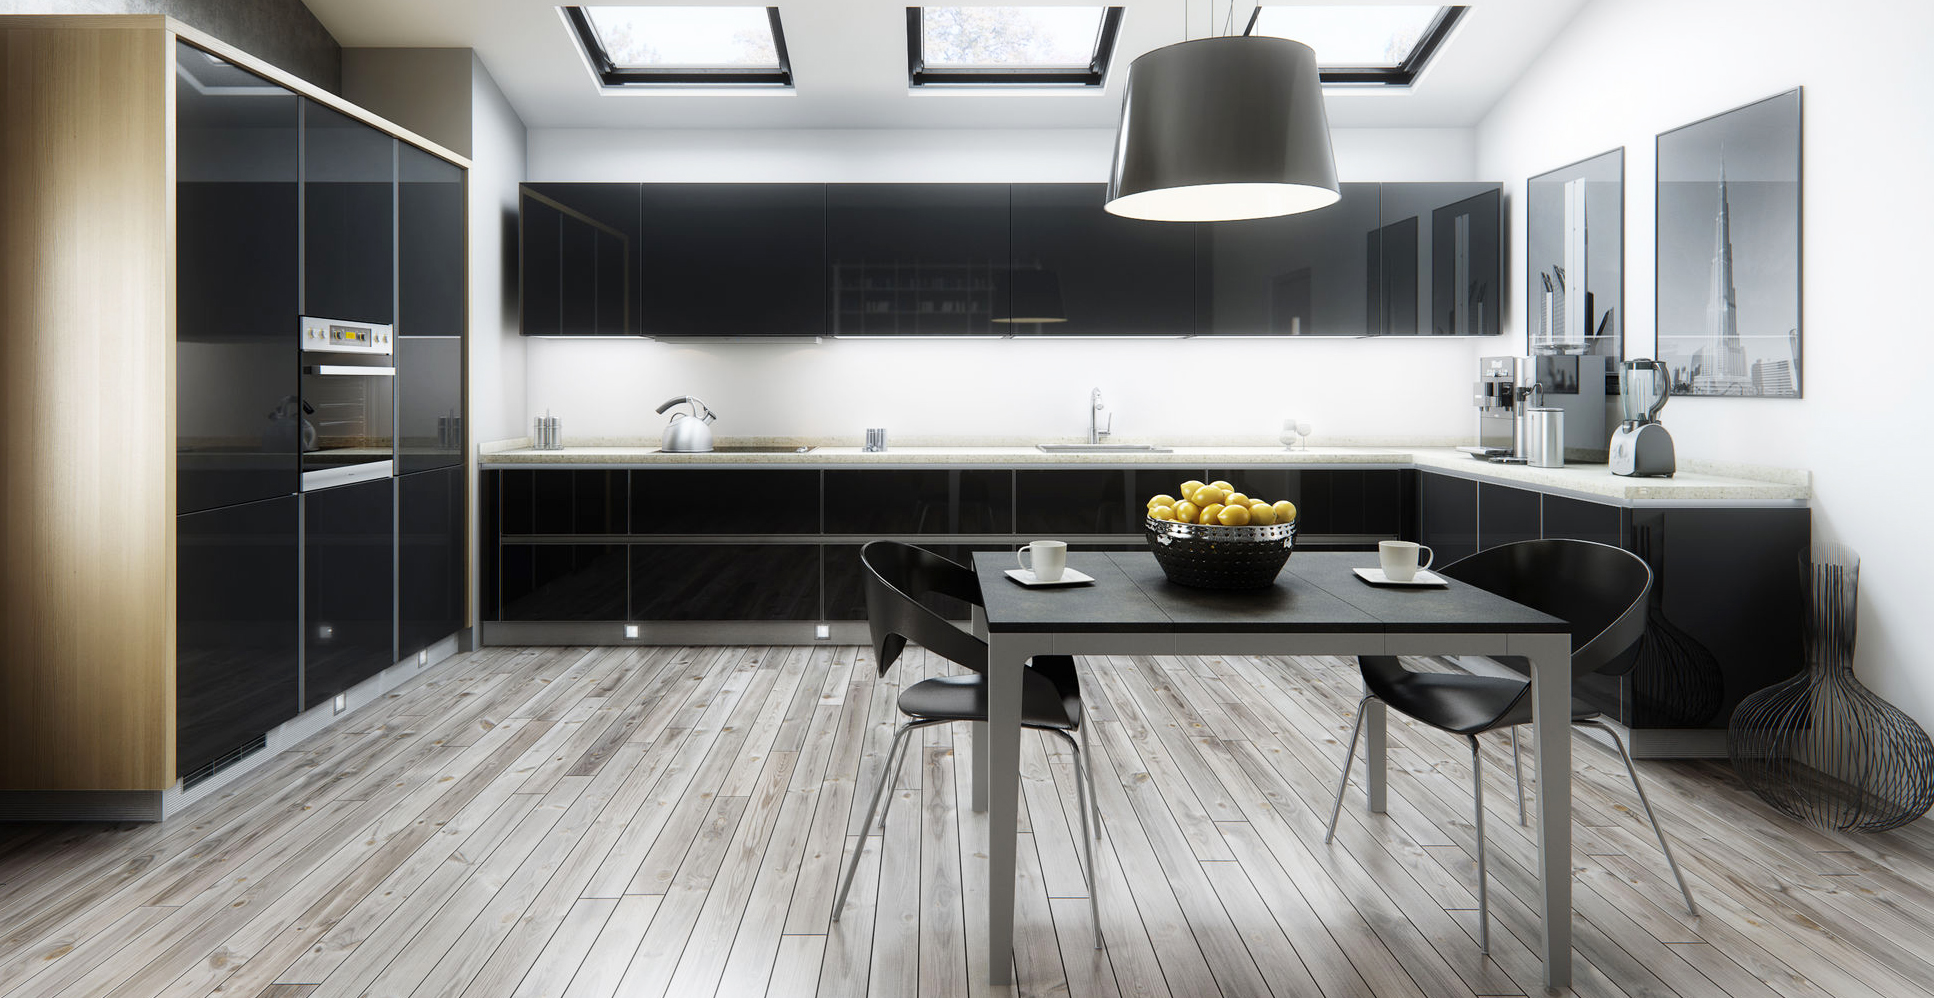 furniture-for-modern-house-with-neutral-color-schemes-for-kitchen-furniture-sets-with-modern-dining-table-interior-design-and-modern-black-kicthen-cabinet-design